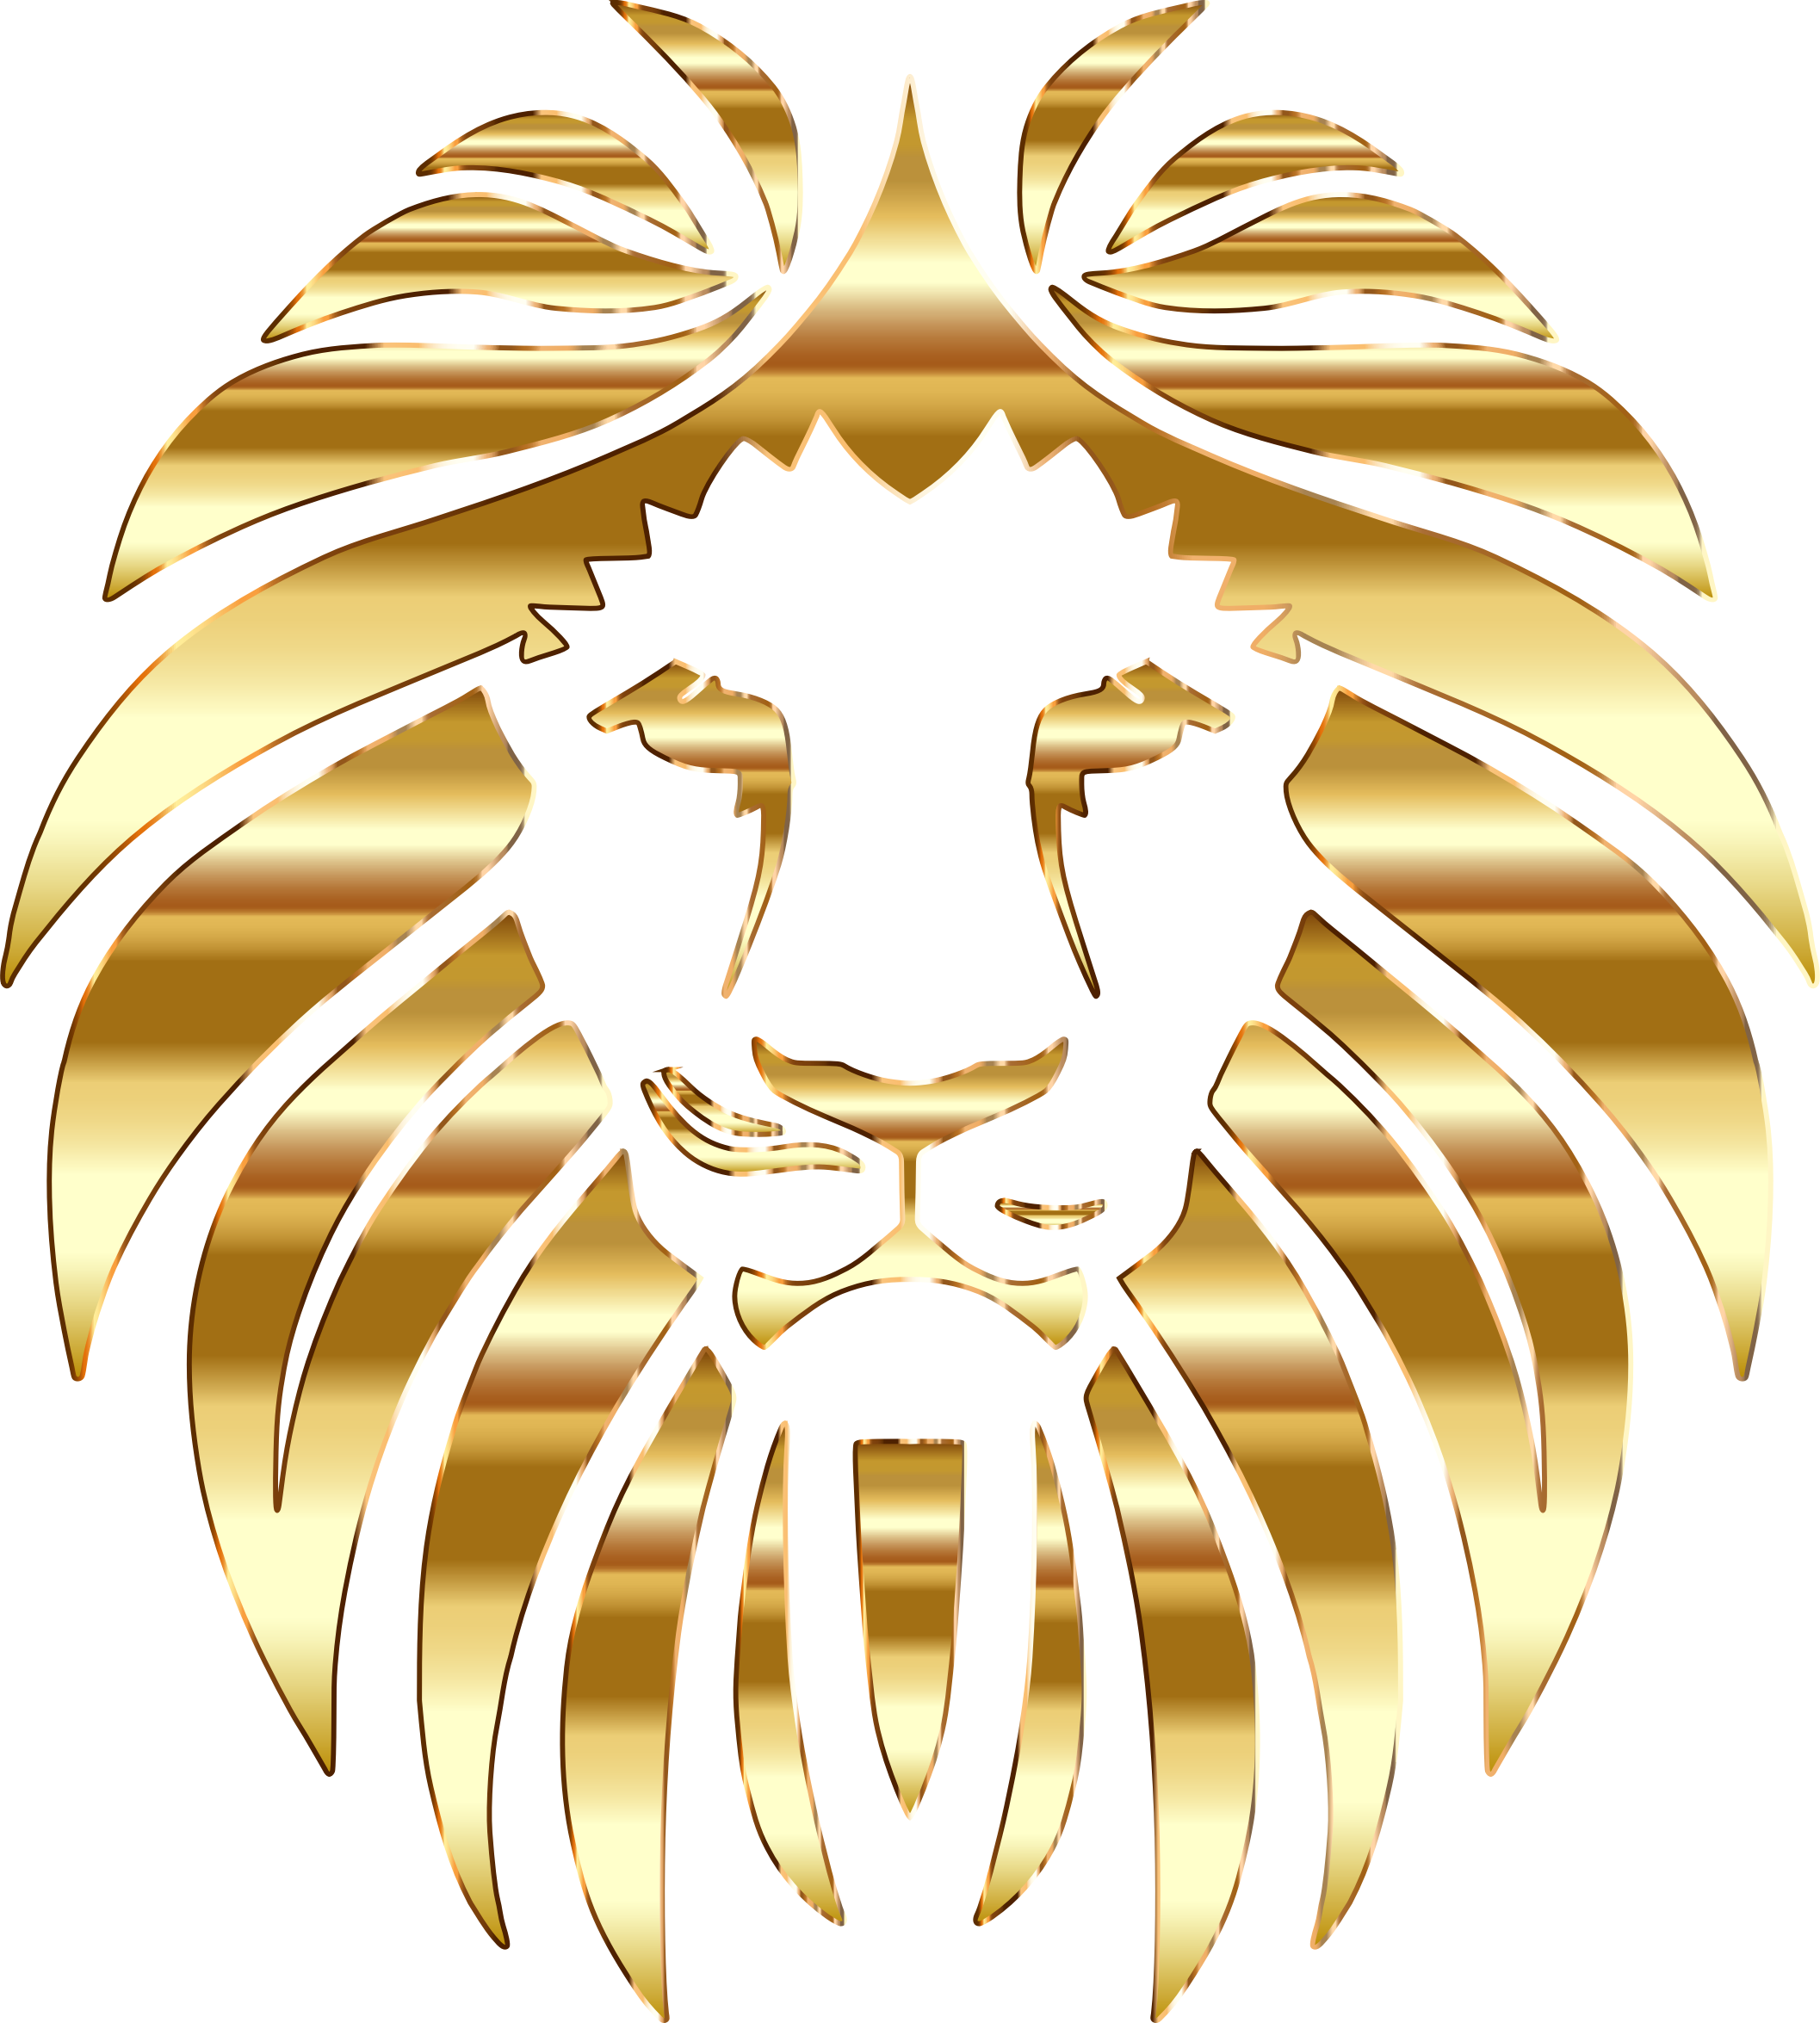 Yellow cat clipart no background graphic royalty free library Clipart - Golden Lion No Background graphic royalty free library